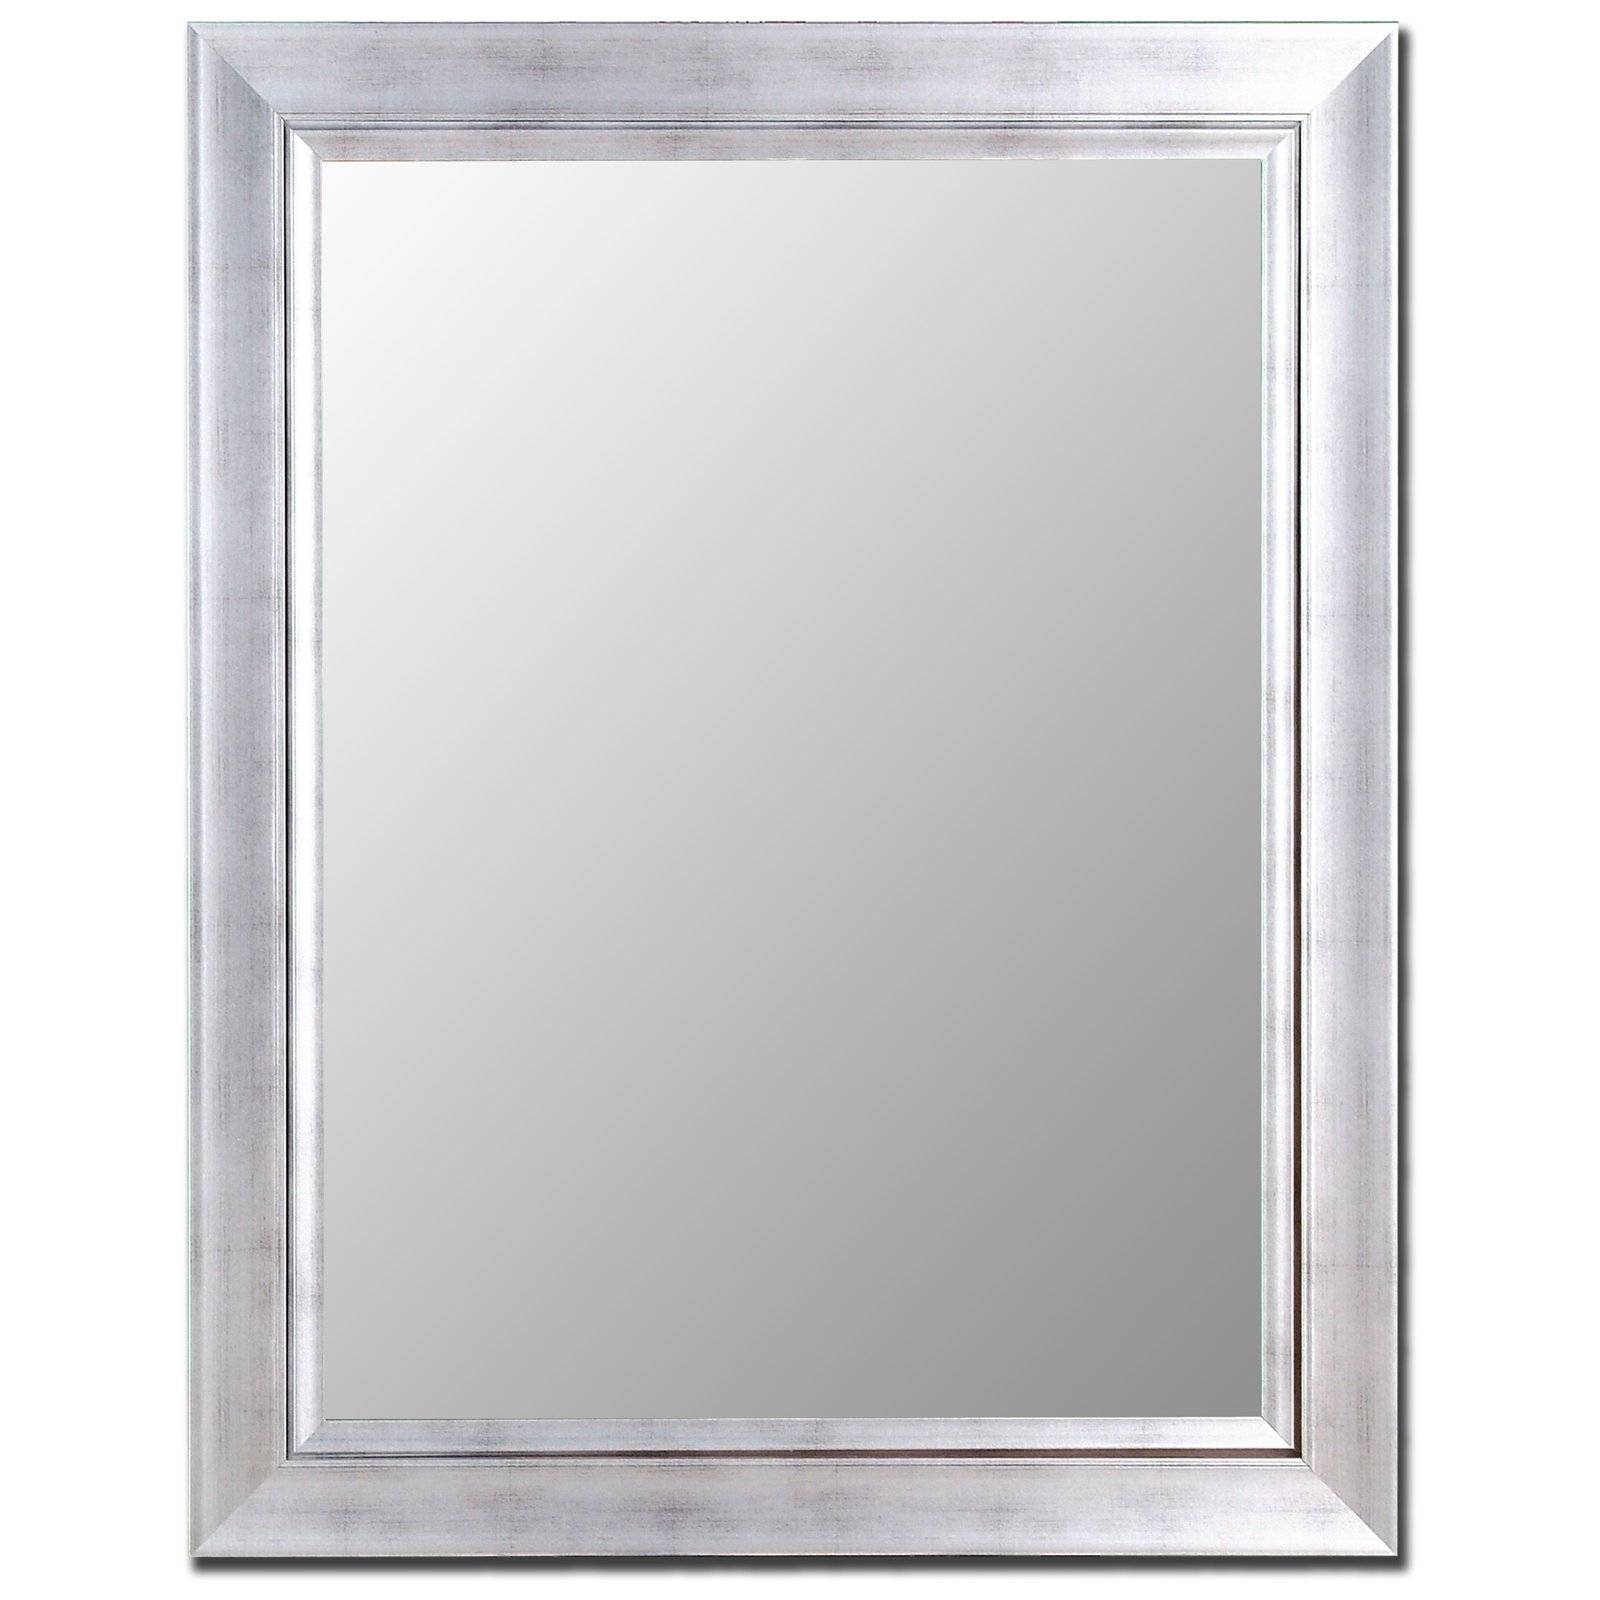 Silver & Stainless Mirror | Hayneedle inside Silver Mirrors (Image 17 of 25)